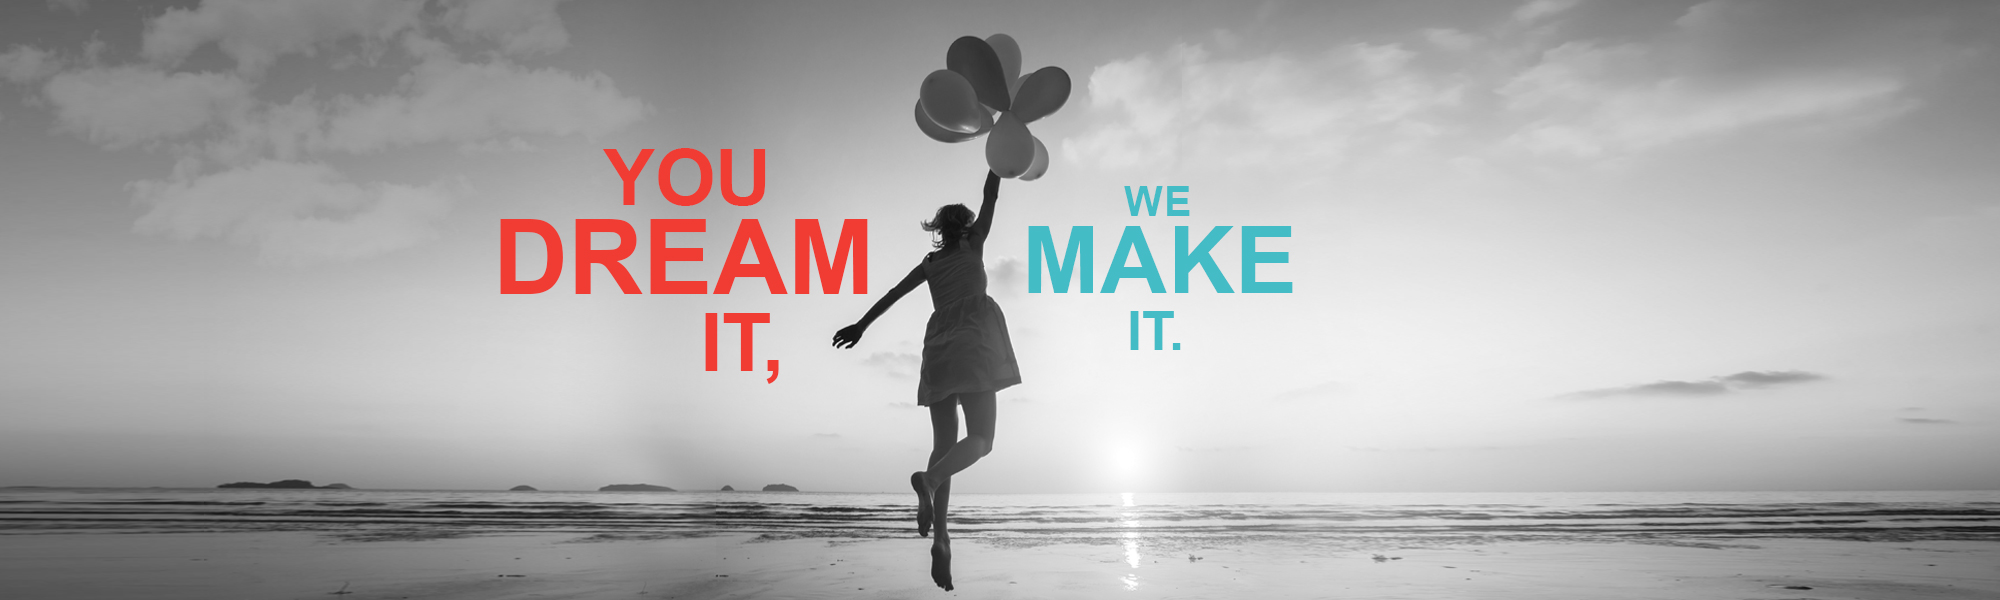 you-dream-we-make